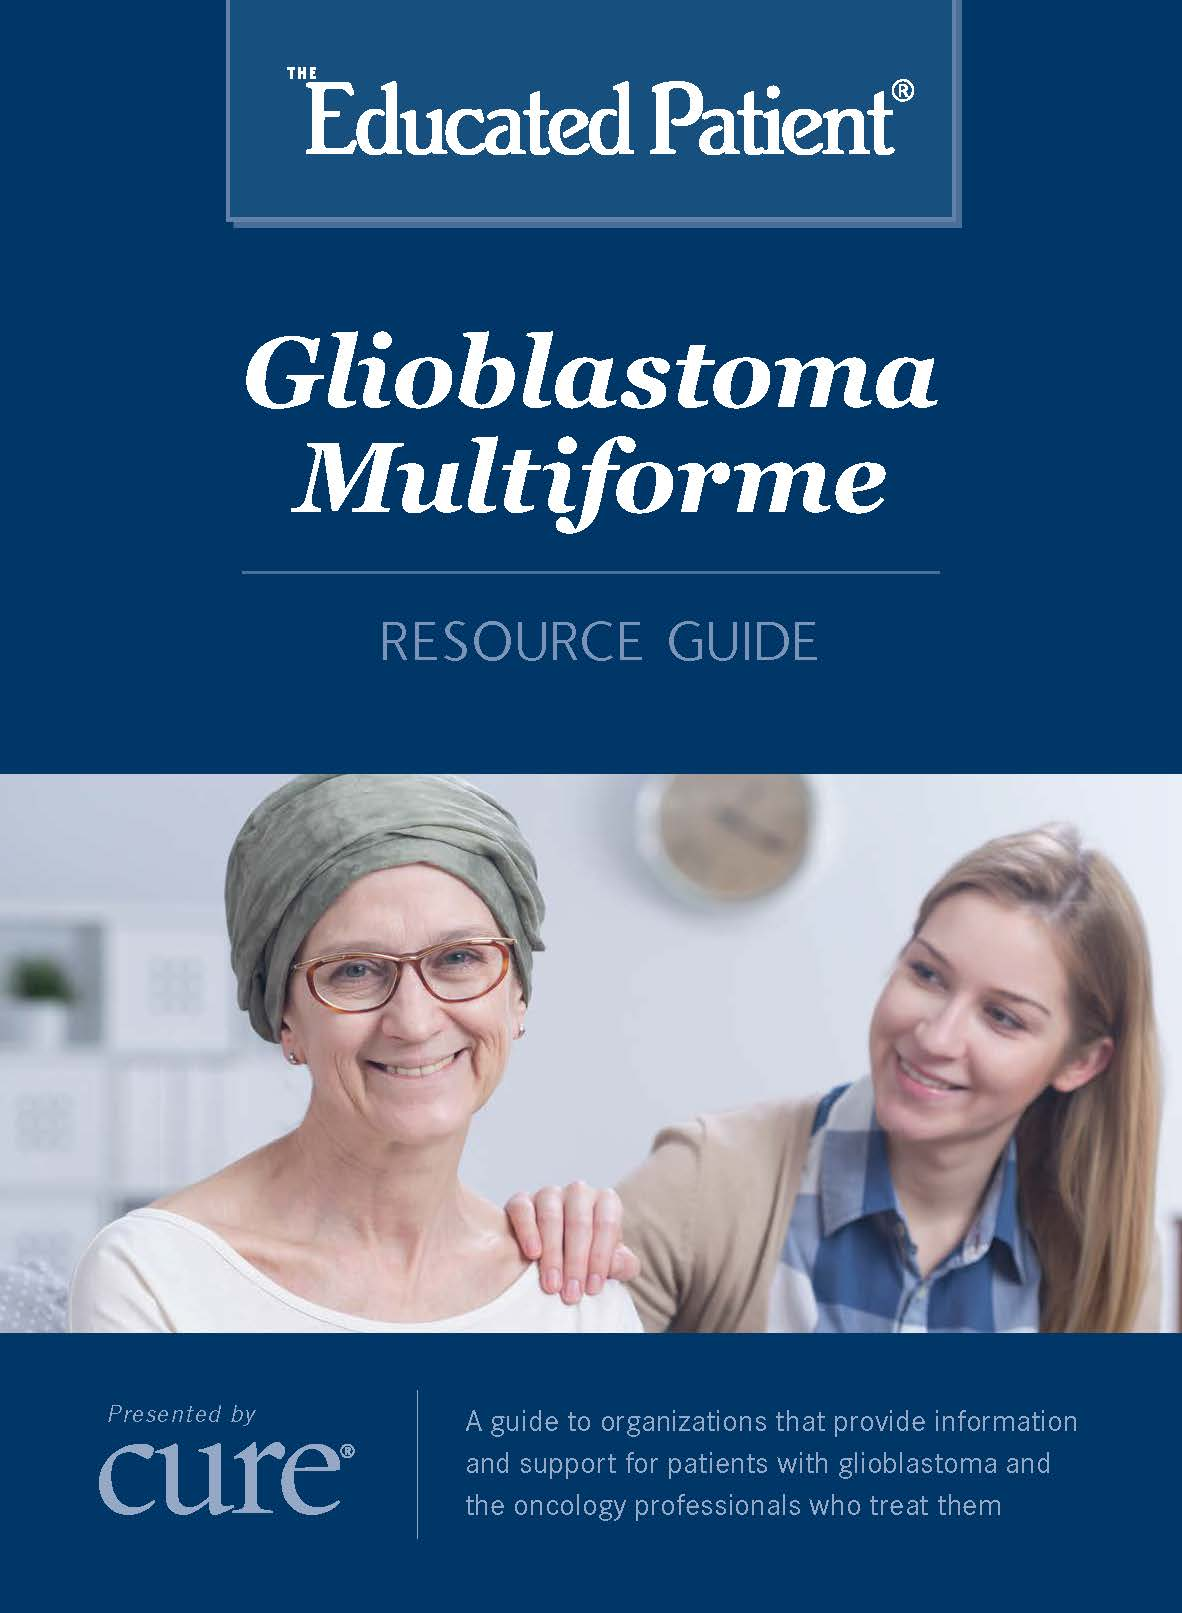 Glioblastoma Multiforme Resource Guide